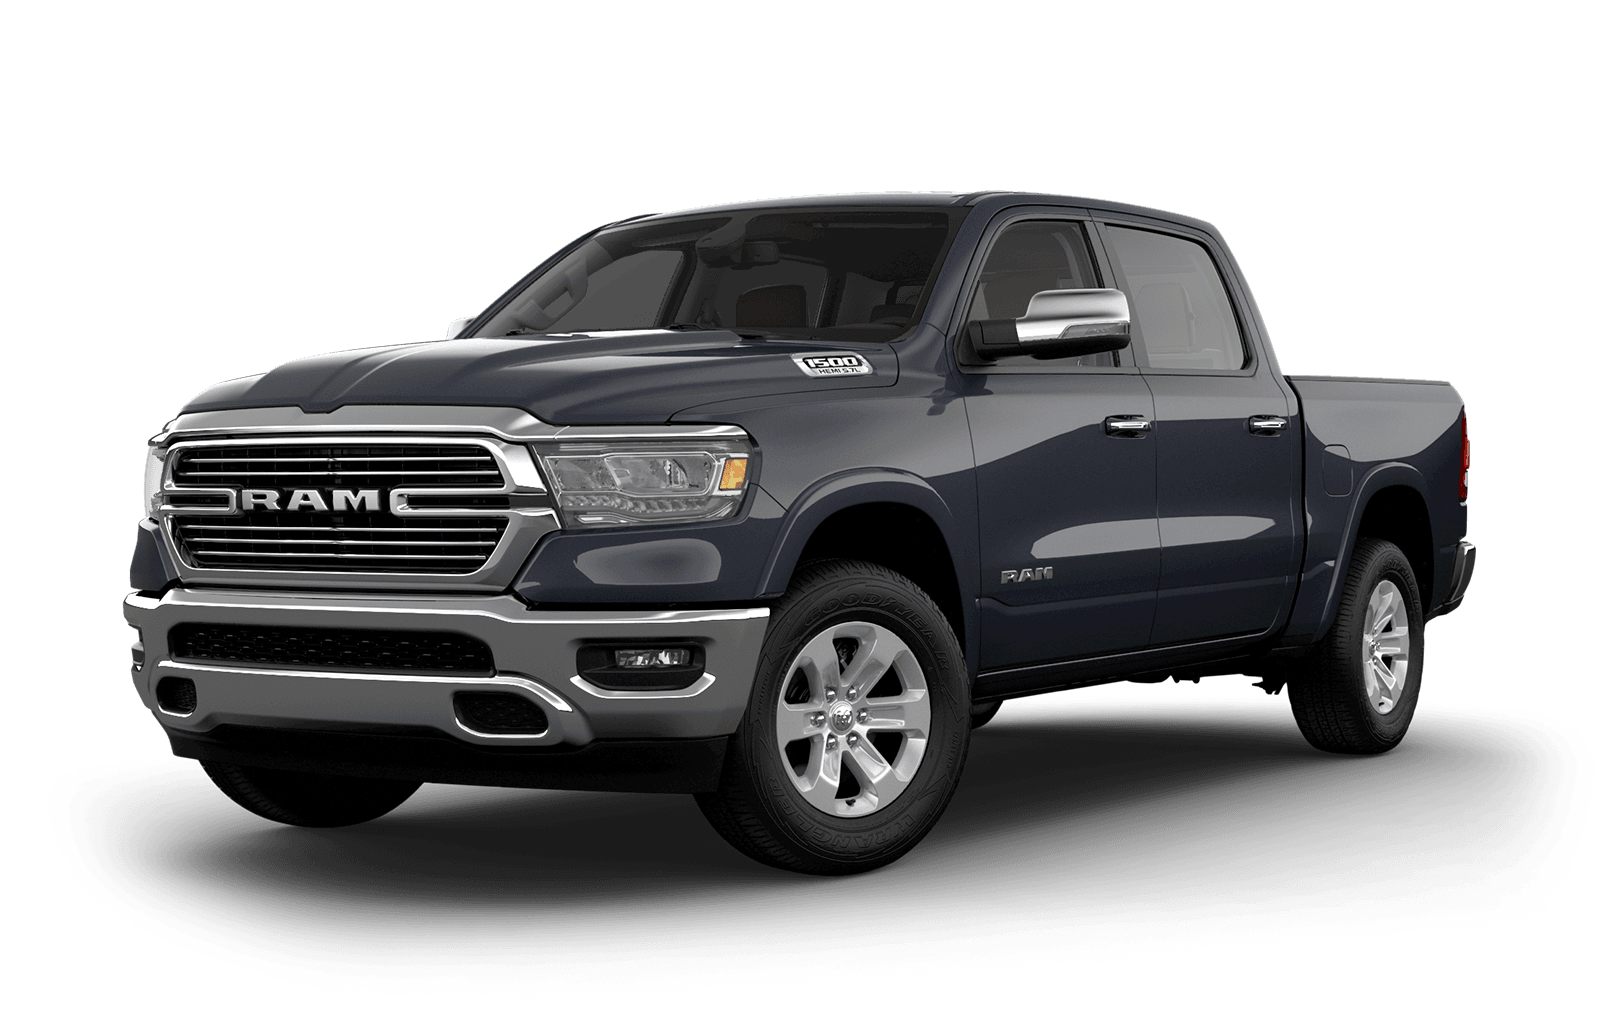 2019 Ram 1500 colour Maximum Steel Metallic